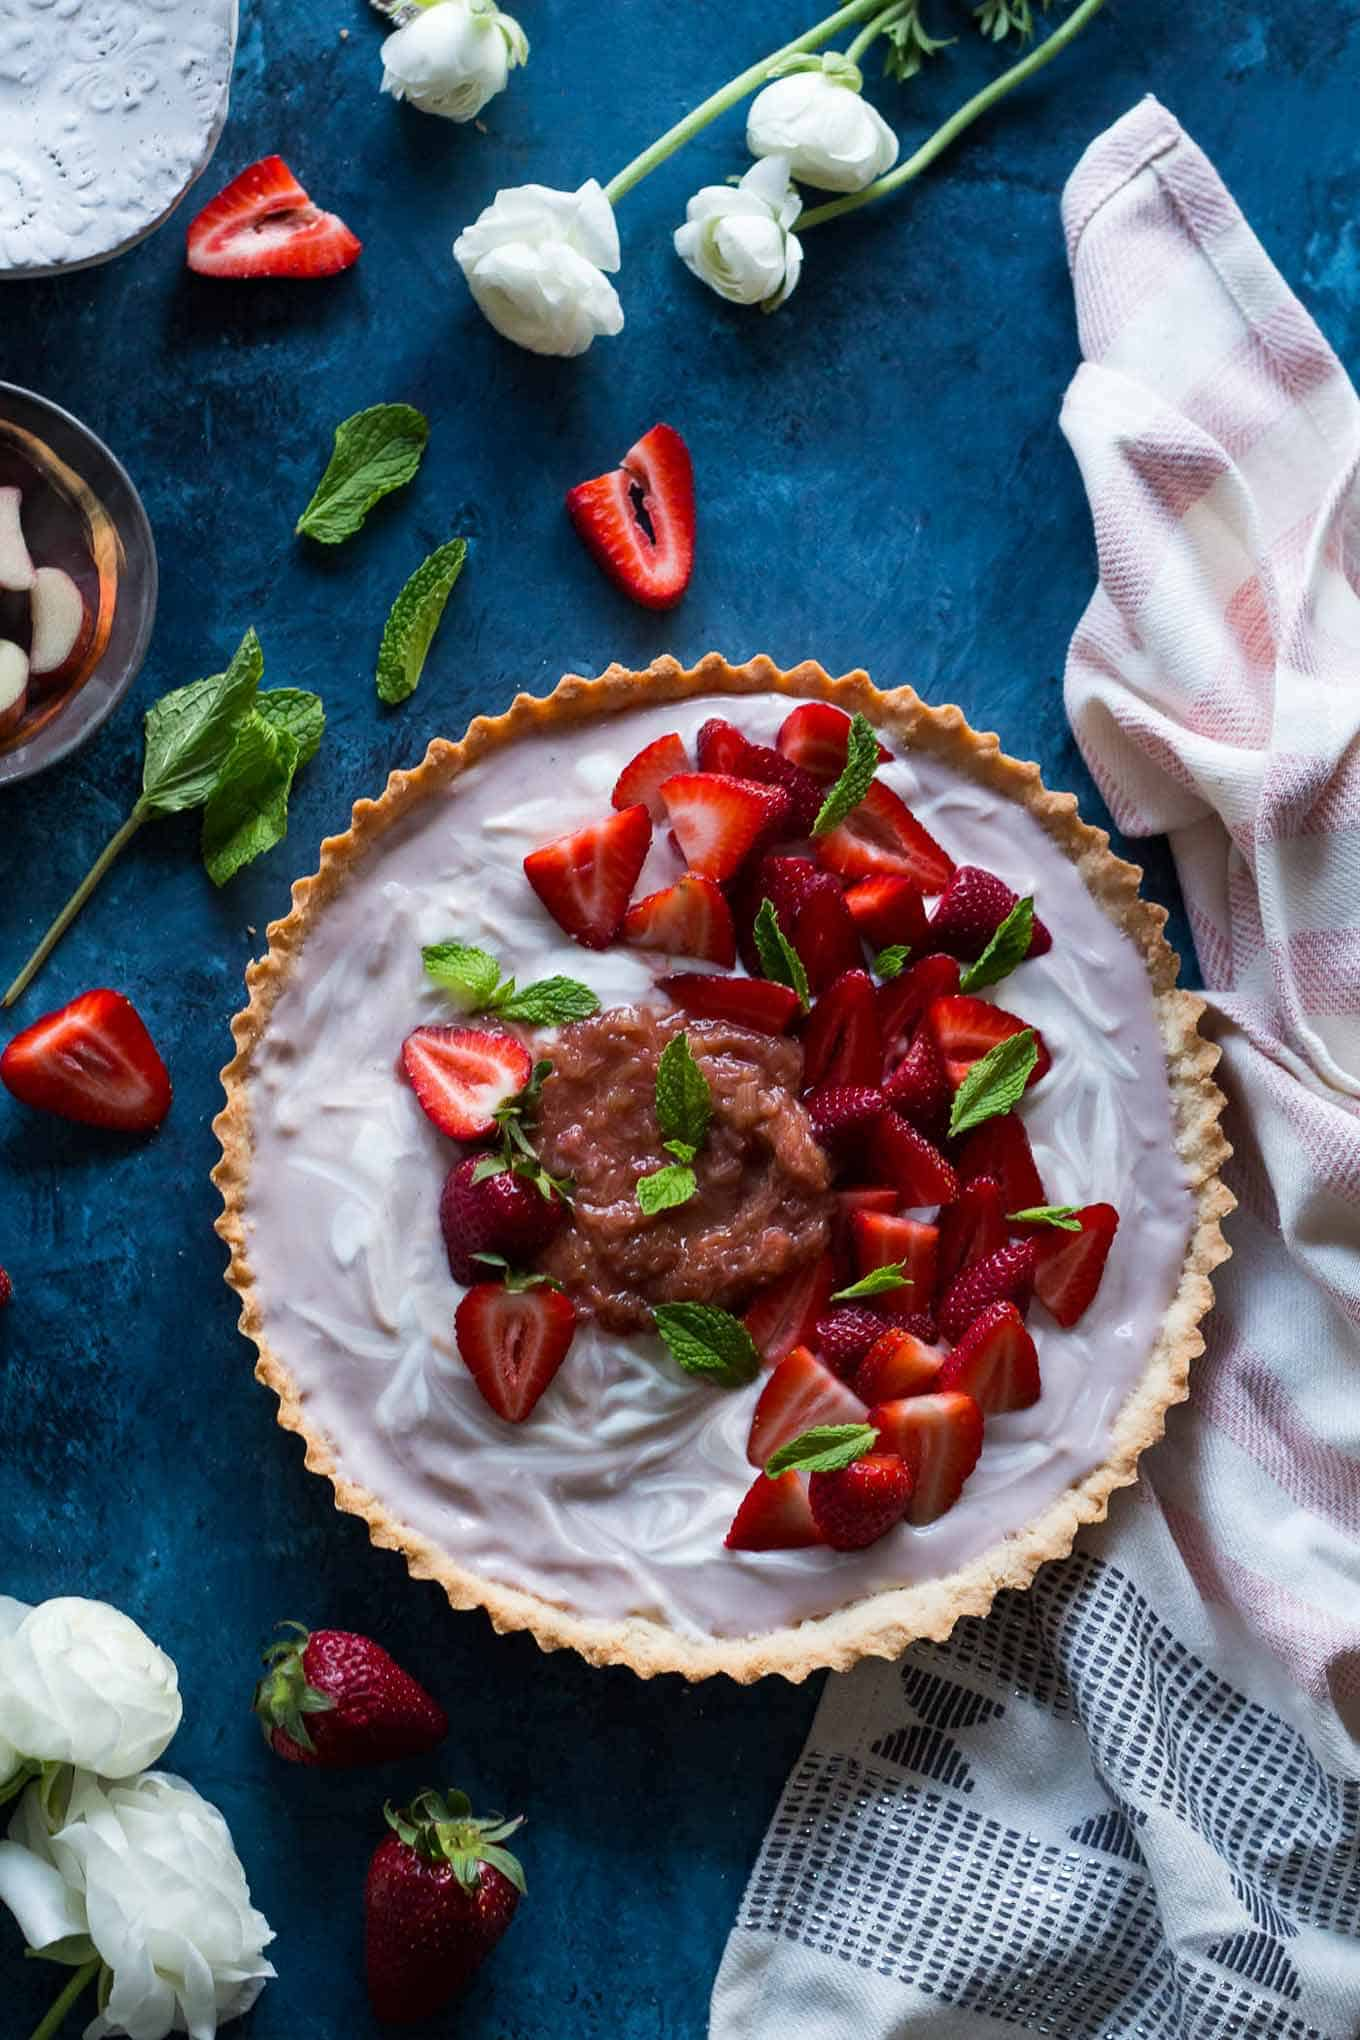 Strawberry vanilla tart with rhubarb compote